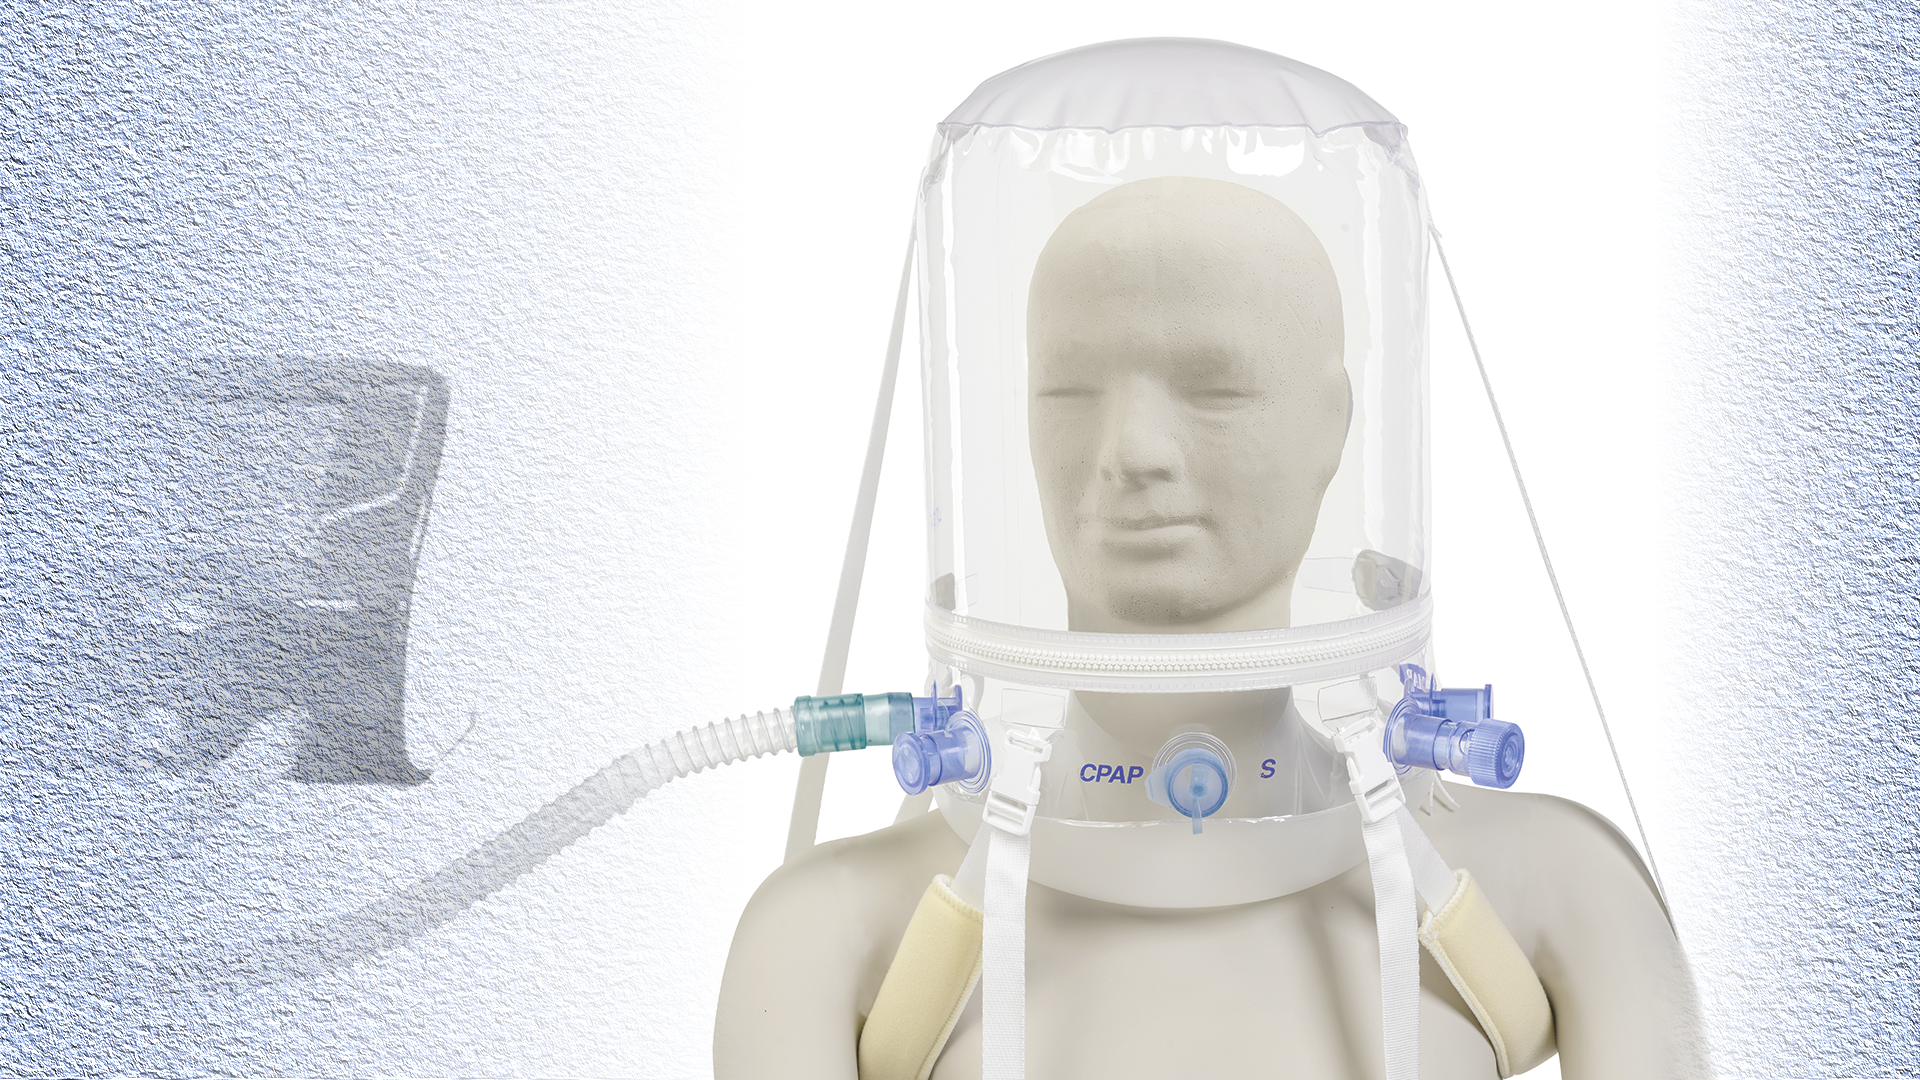 A photo of the Non Invasive Ventilation Helmet made by DIMAR S.r.l. in Medolla, Italy